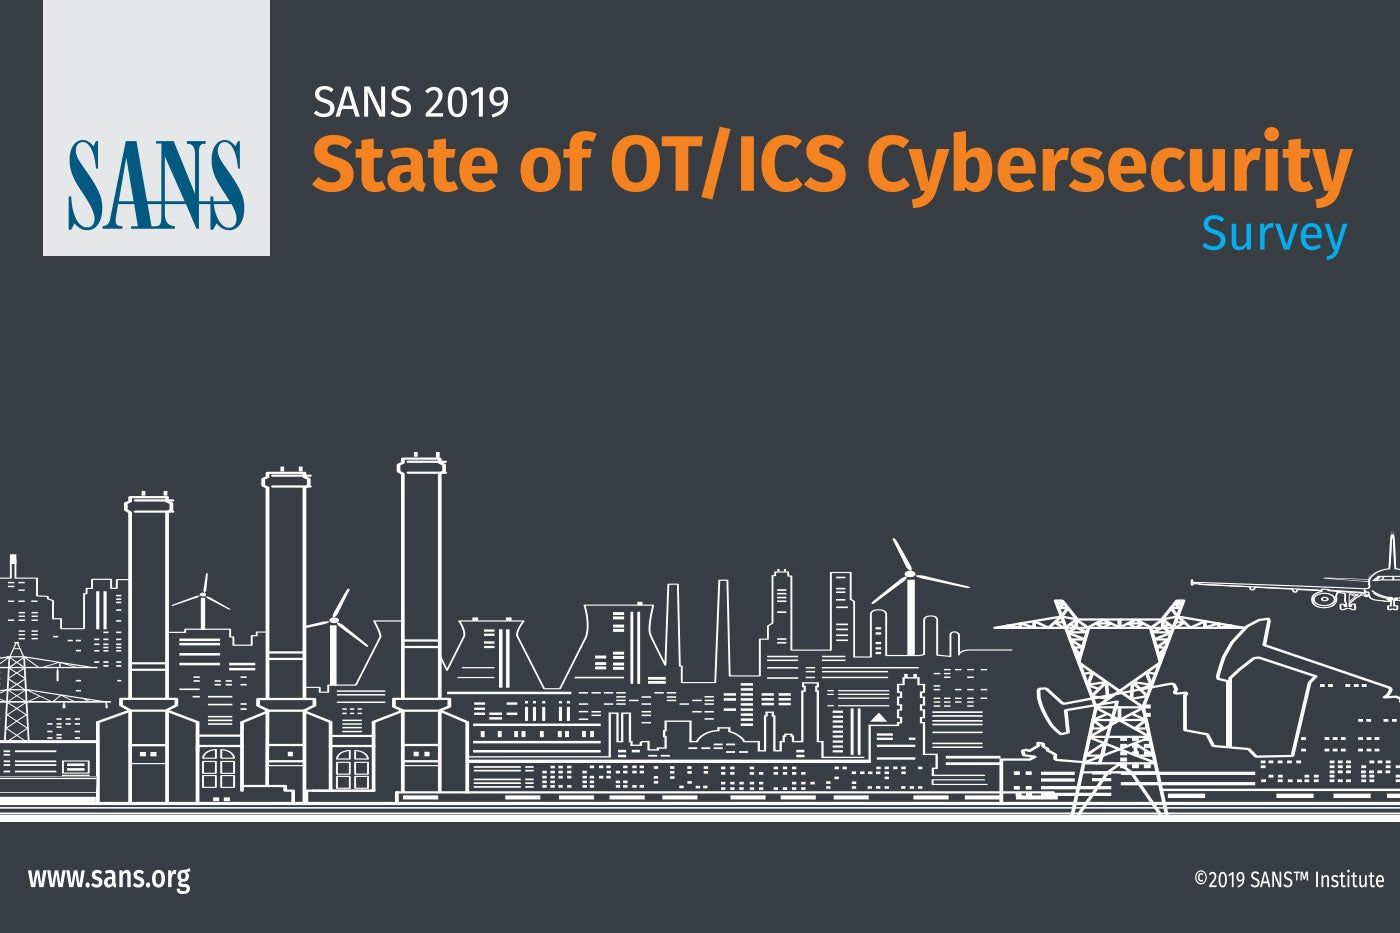 SANS 2019 OT/ICS Cyber Security Research: 3 Key Findings